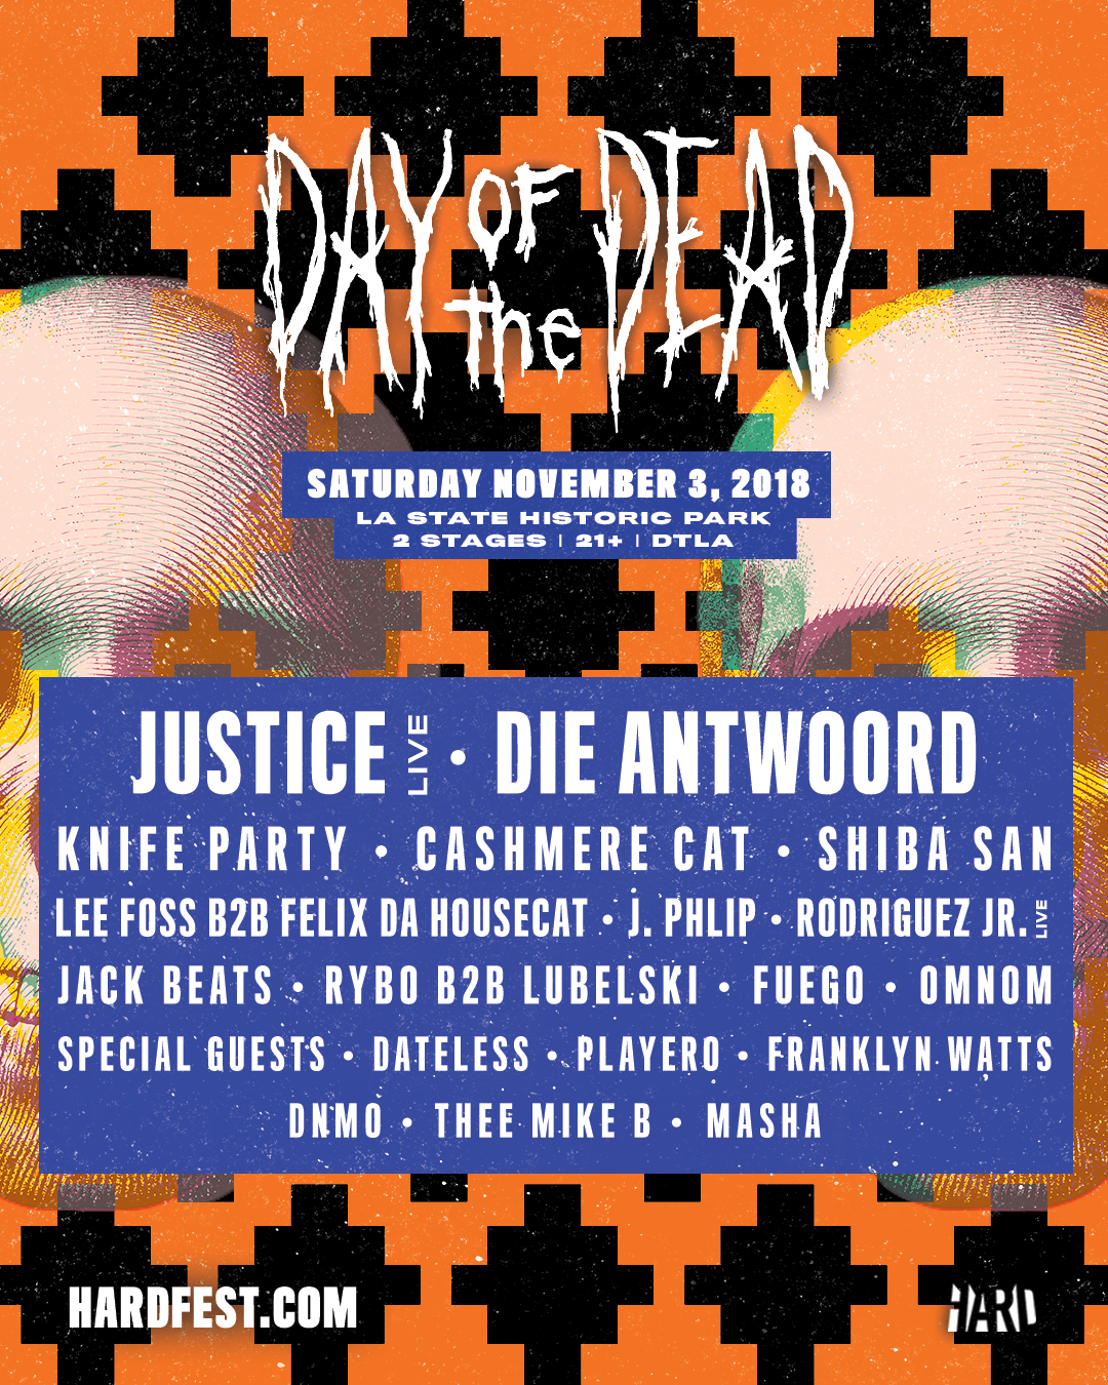 HARD Day of the Dead delivers impeccable comeback lineup topped by Justice, Die Antwoord, and Knife PartyDay Of The Dead 2018